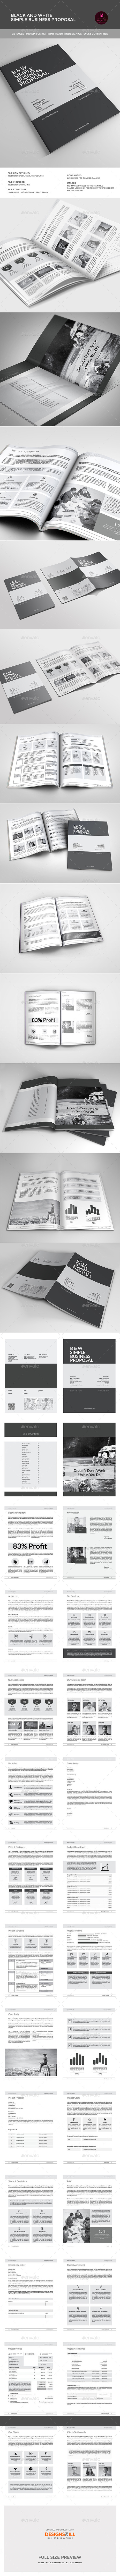 GraphicRiver Simple Proposal Template 11094630